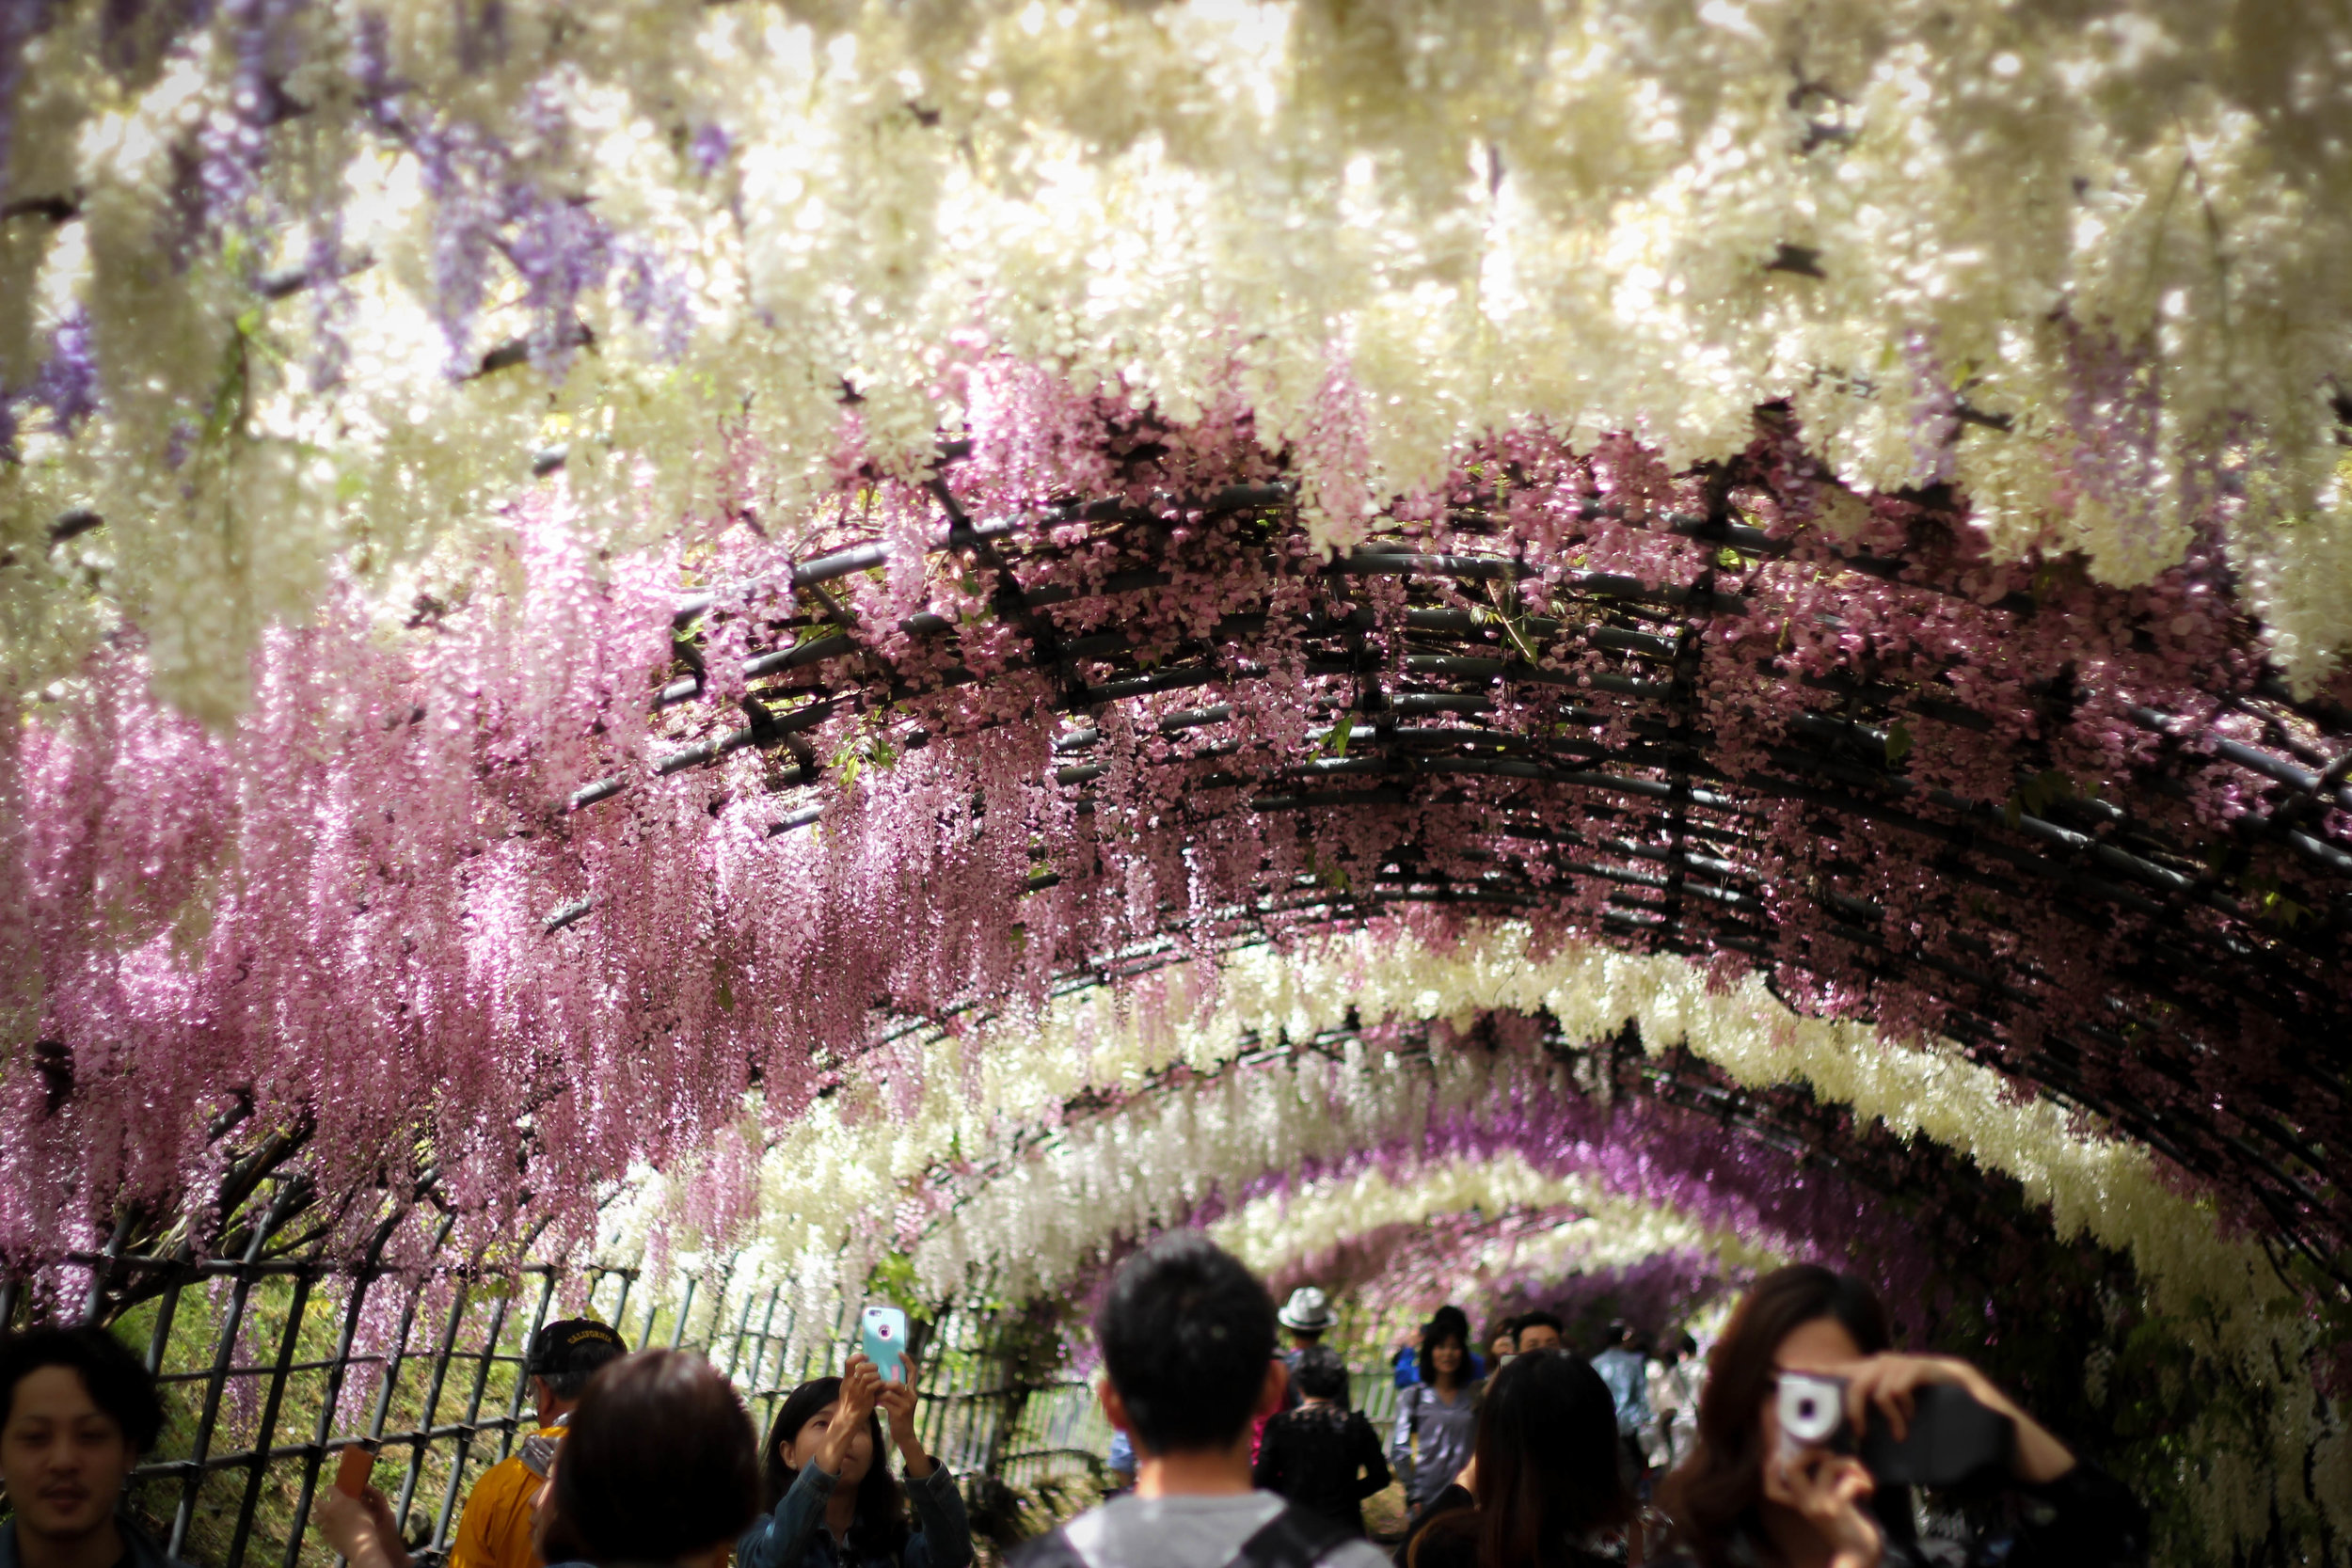 Tunnels and tunnels of wisteria as far as the eye can see.